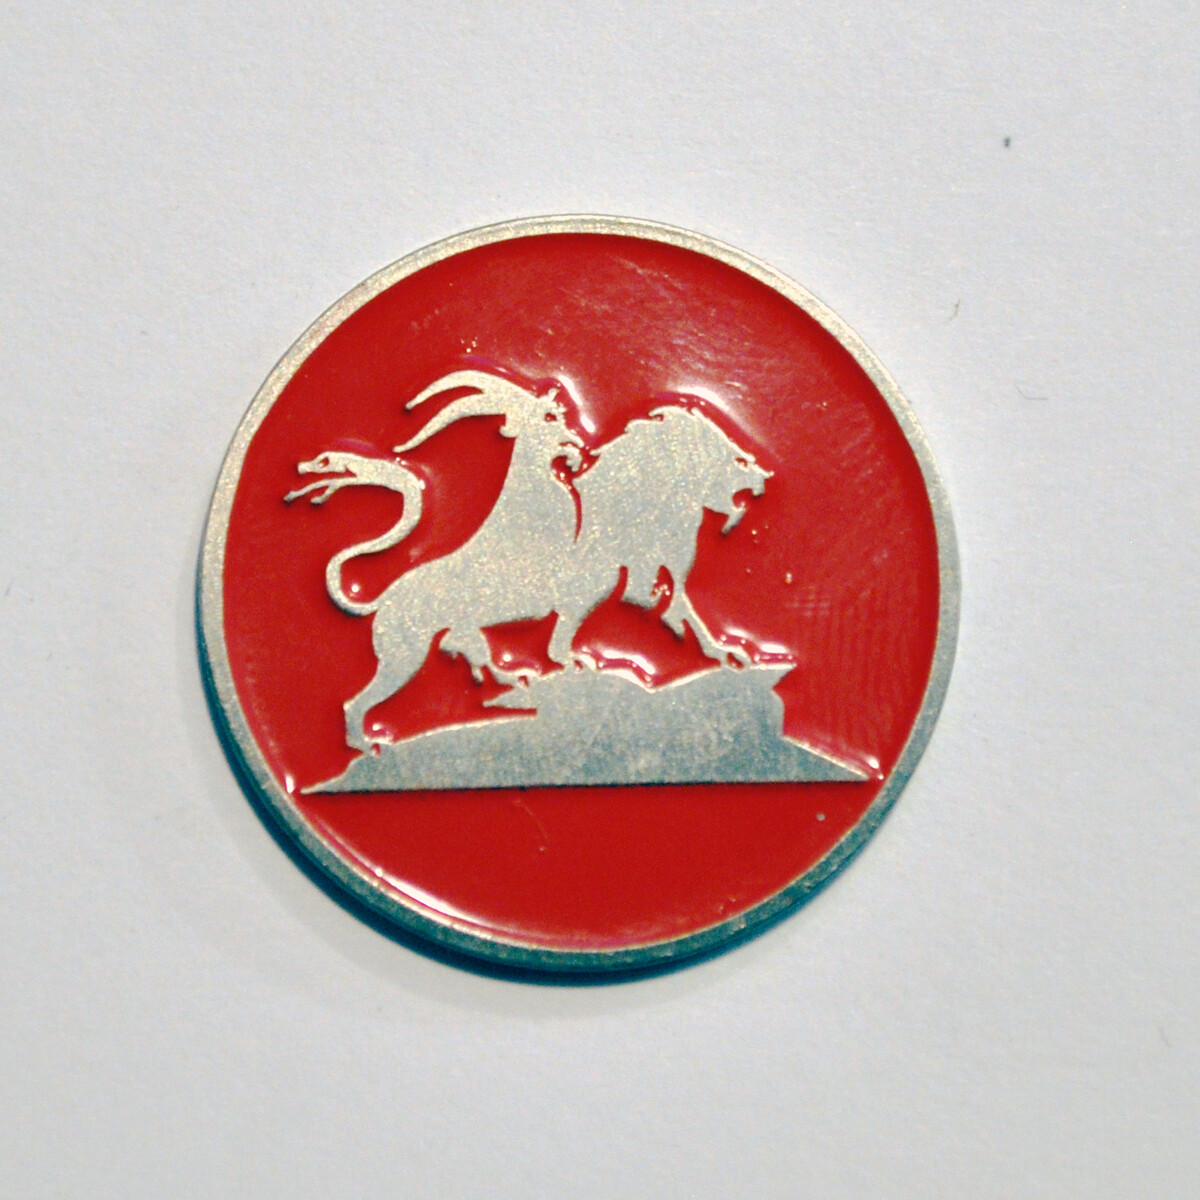 Ball Marker - Red Chimera/Vegas